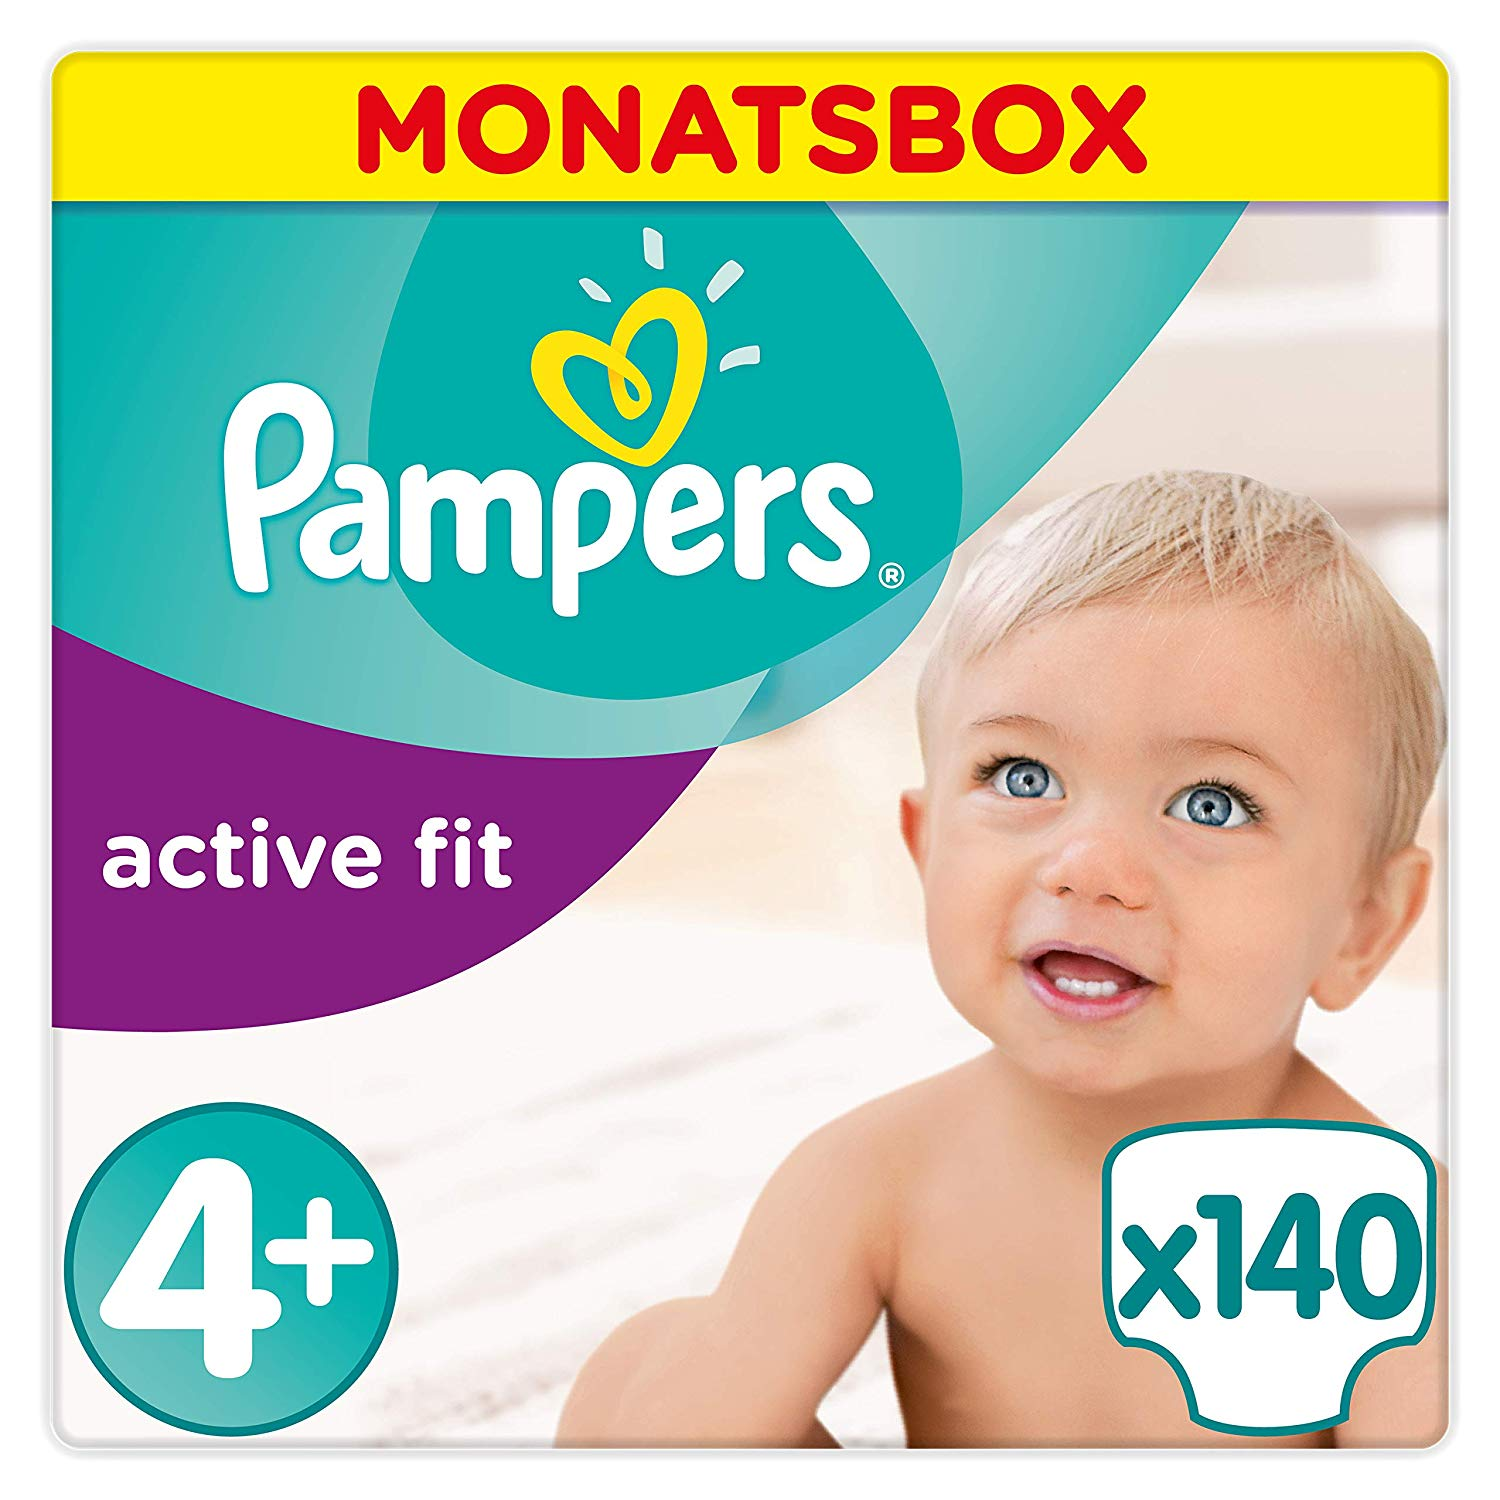 Pampers Active Fit Windeln, Gr. 4+, Maxi Plus 9-18kg, Monatsbox, 1er Pack (1 x 140 Stück)